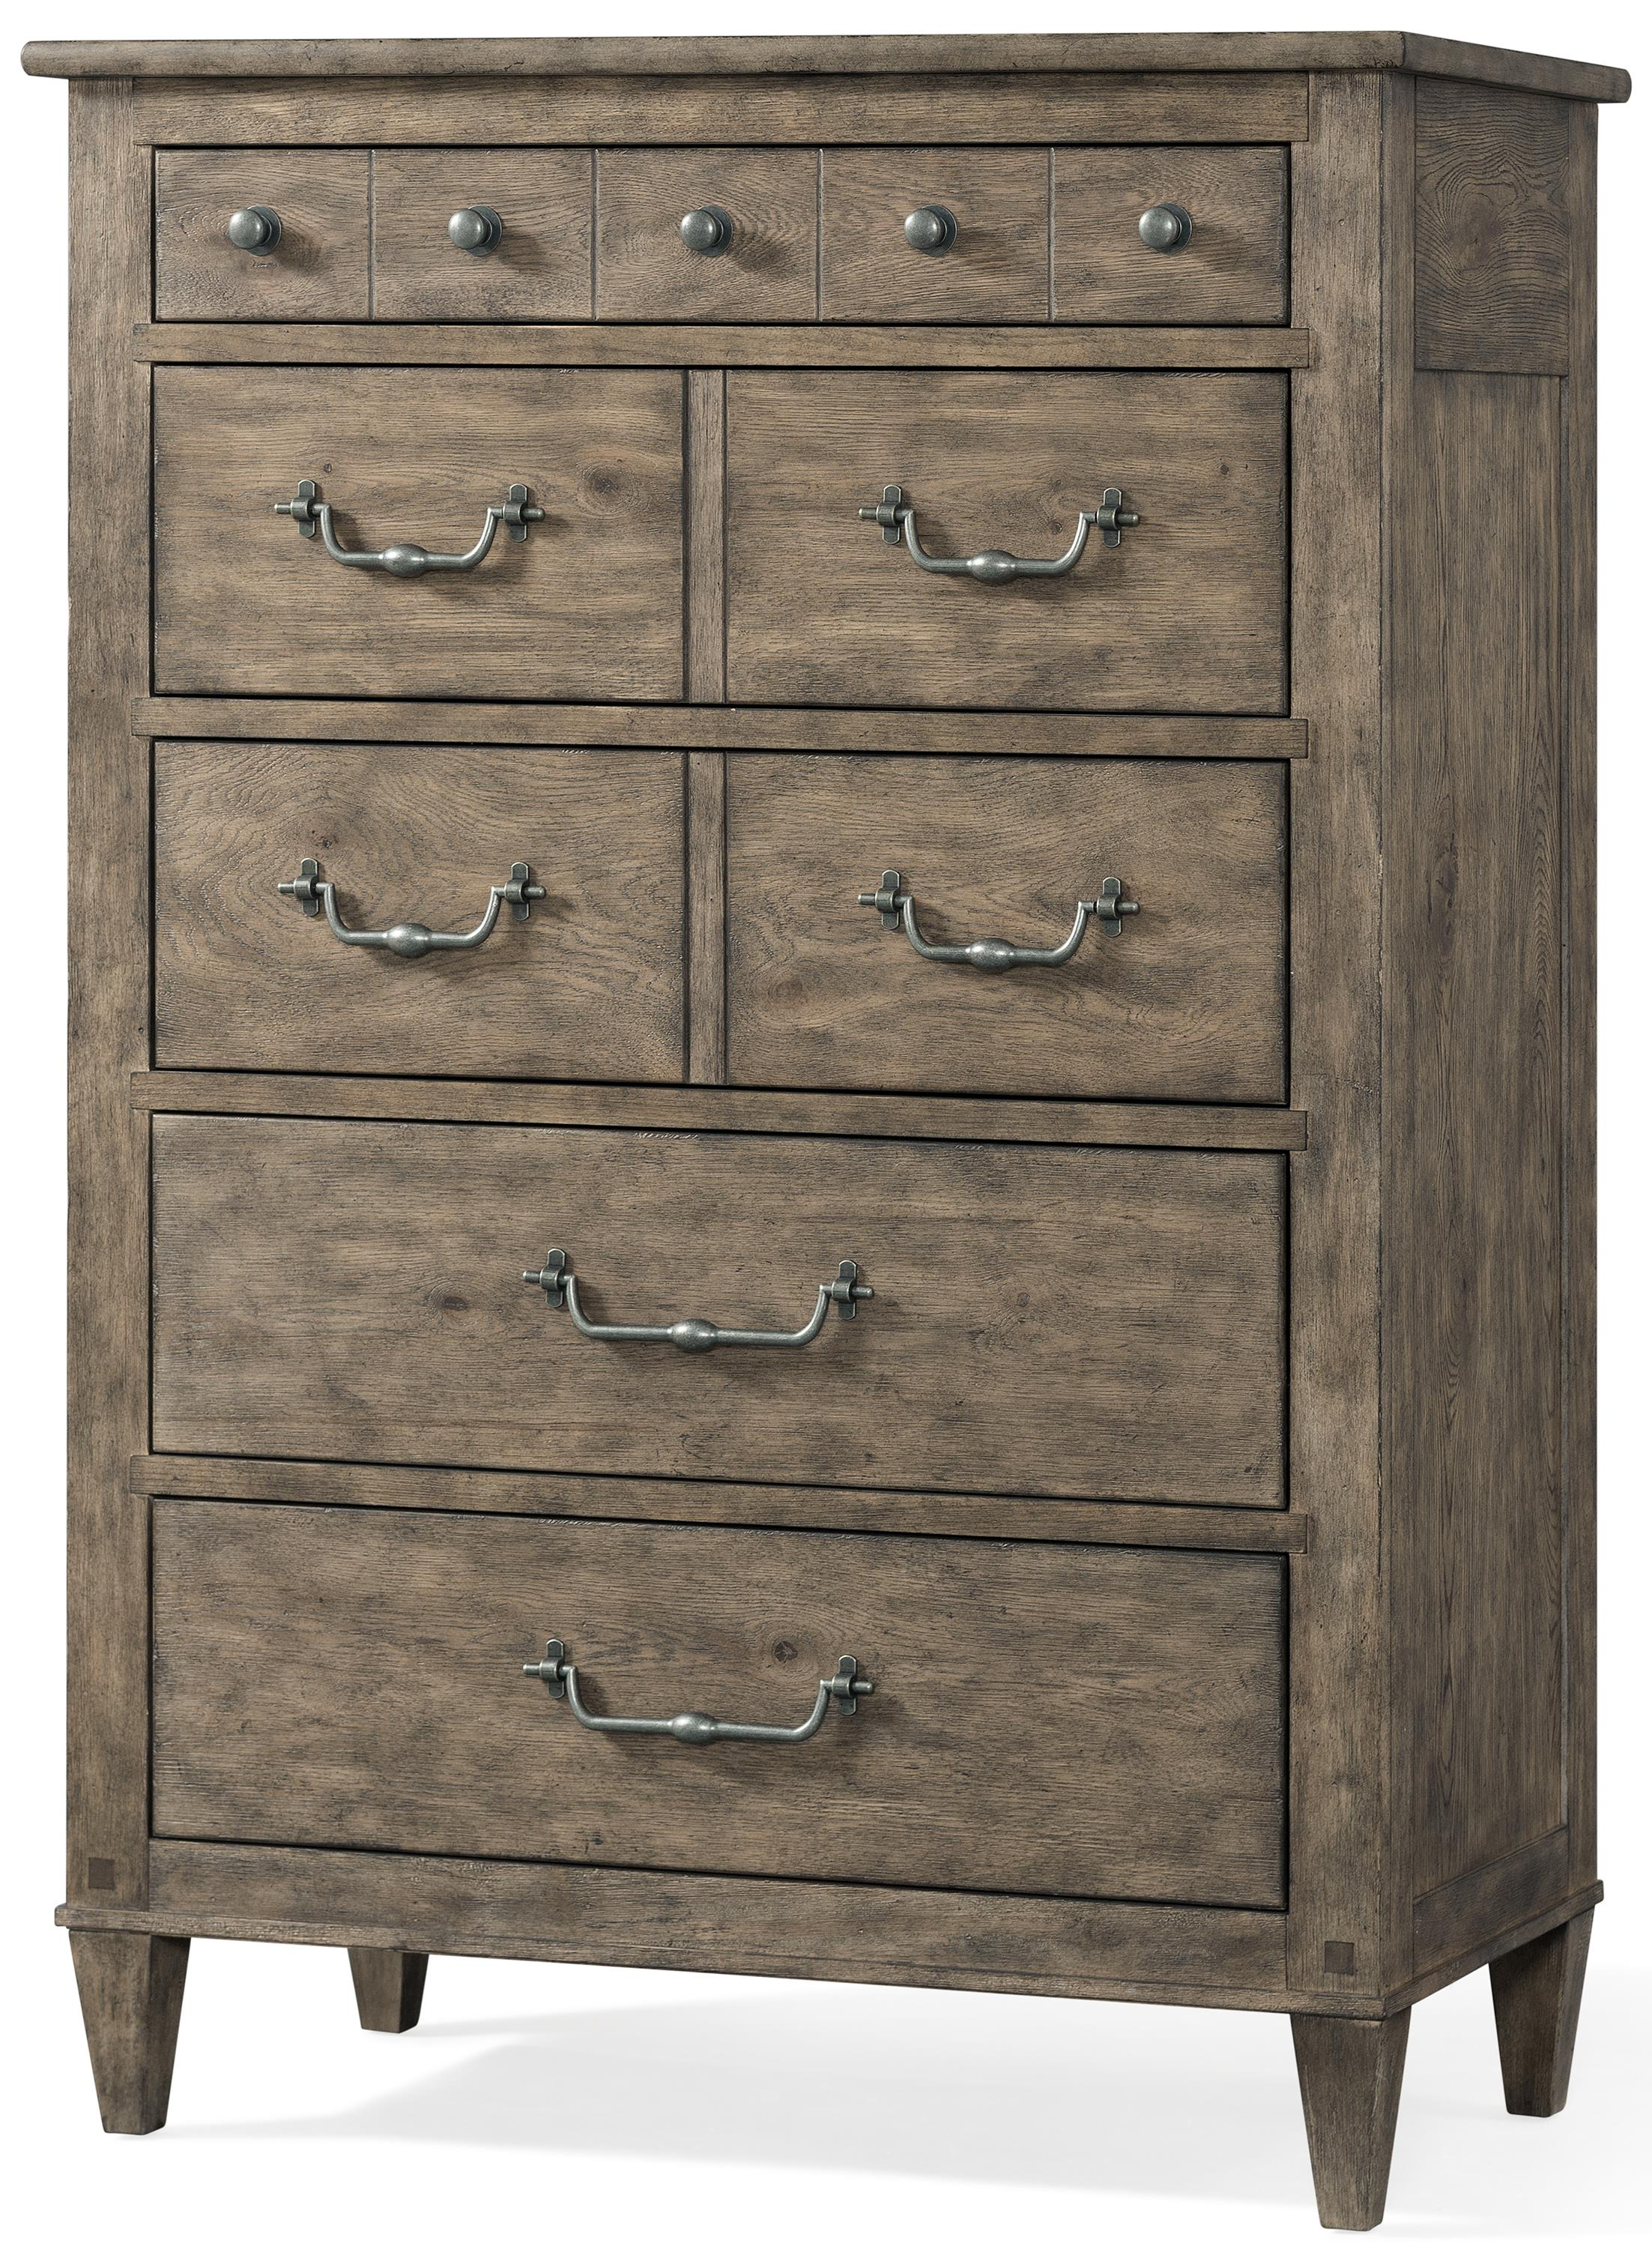 Morris Home River Falls River Falls Drawer Chest - Item Number: 451-681 CHEST